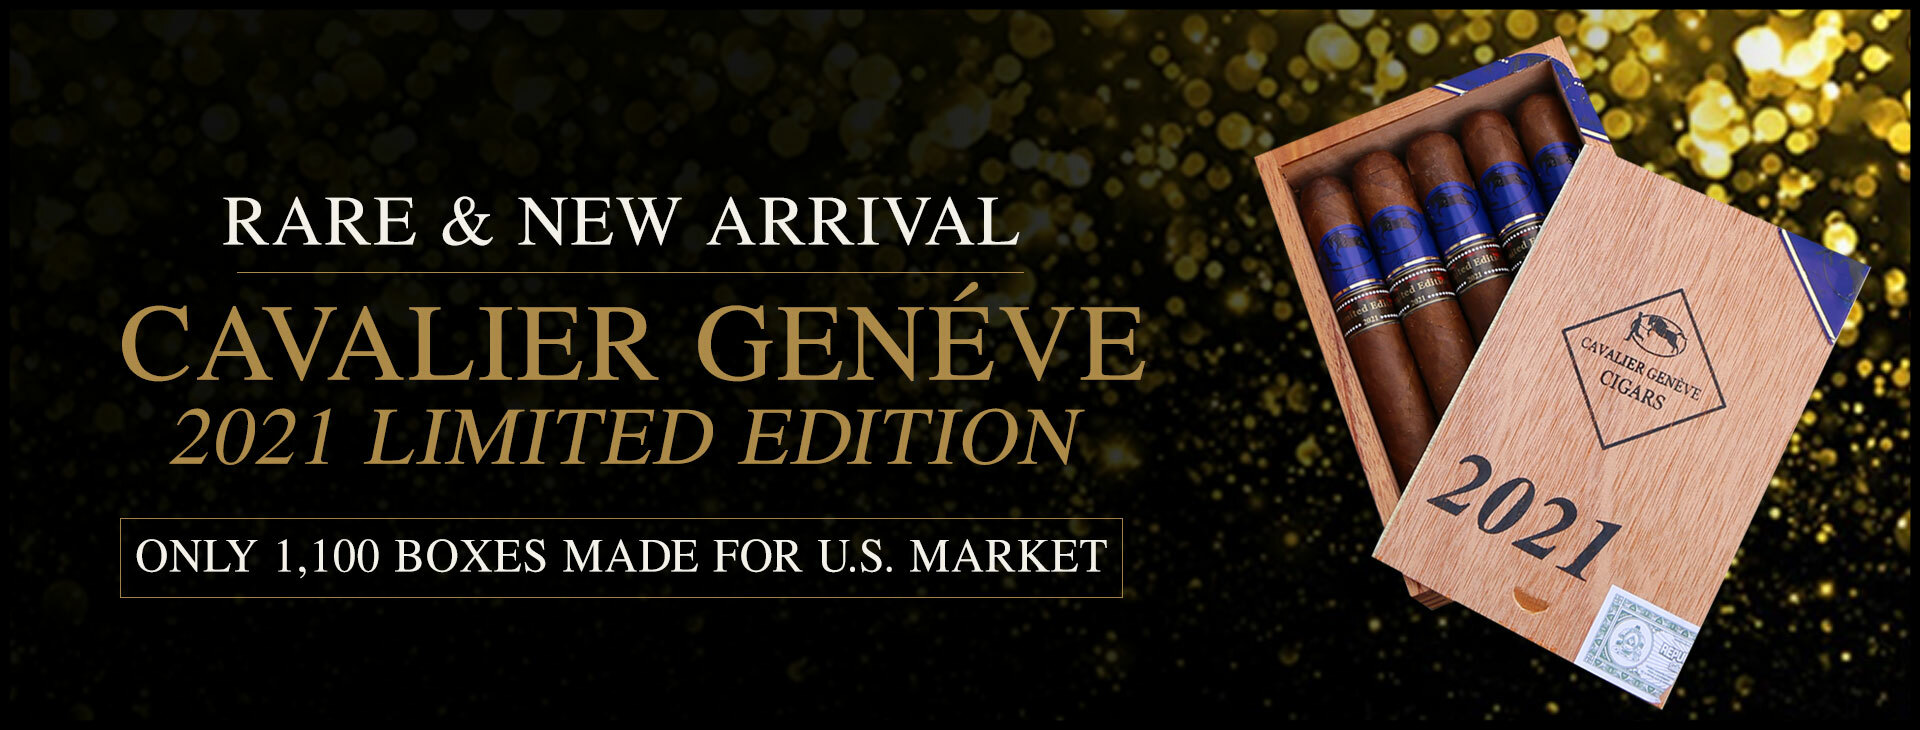 RARE CAVELIER GENEVE 2021 LIMITED EDITION